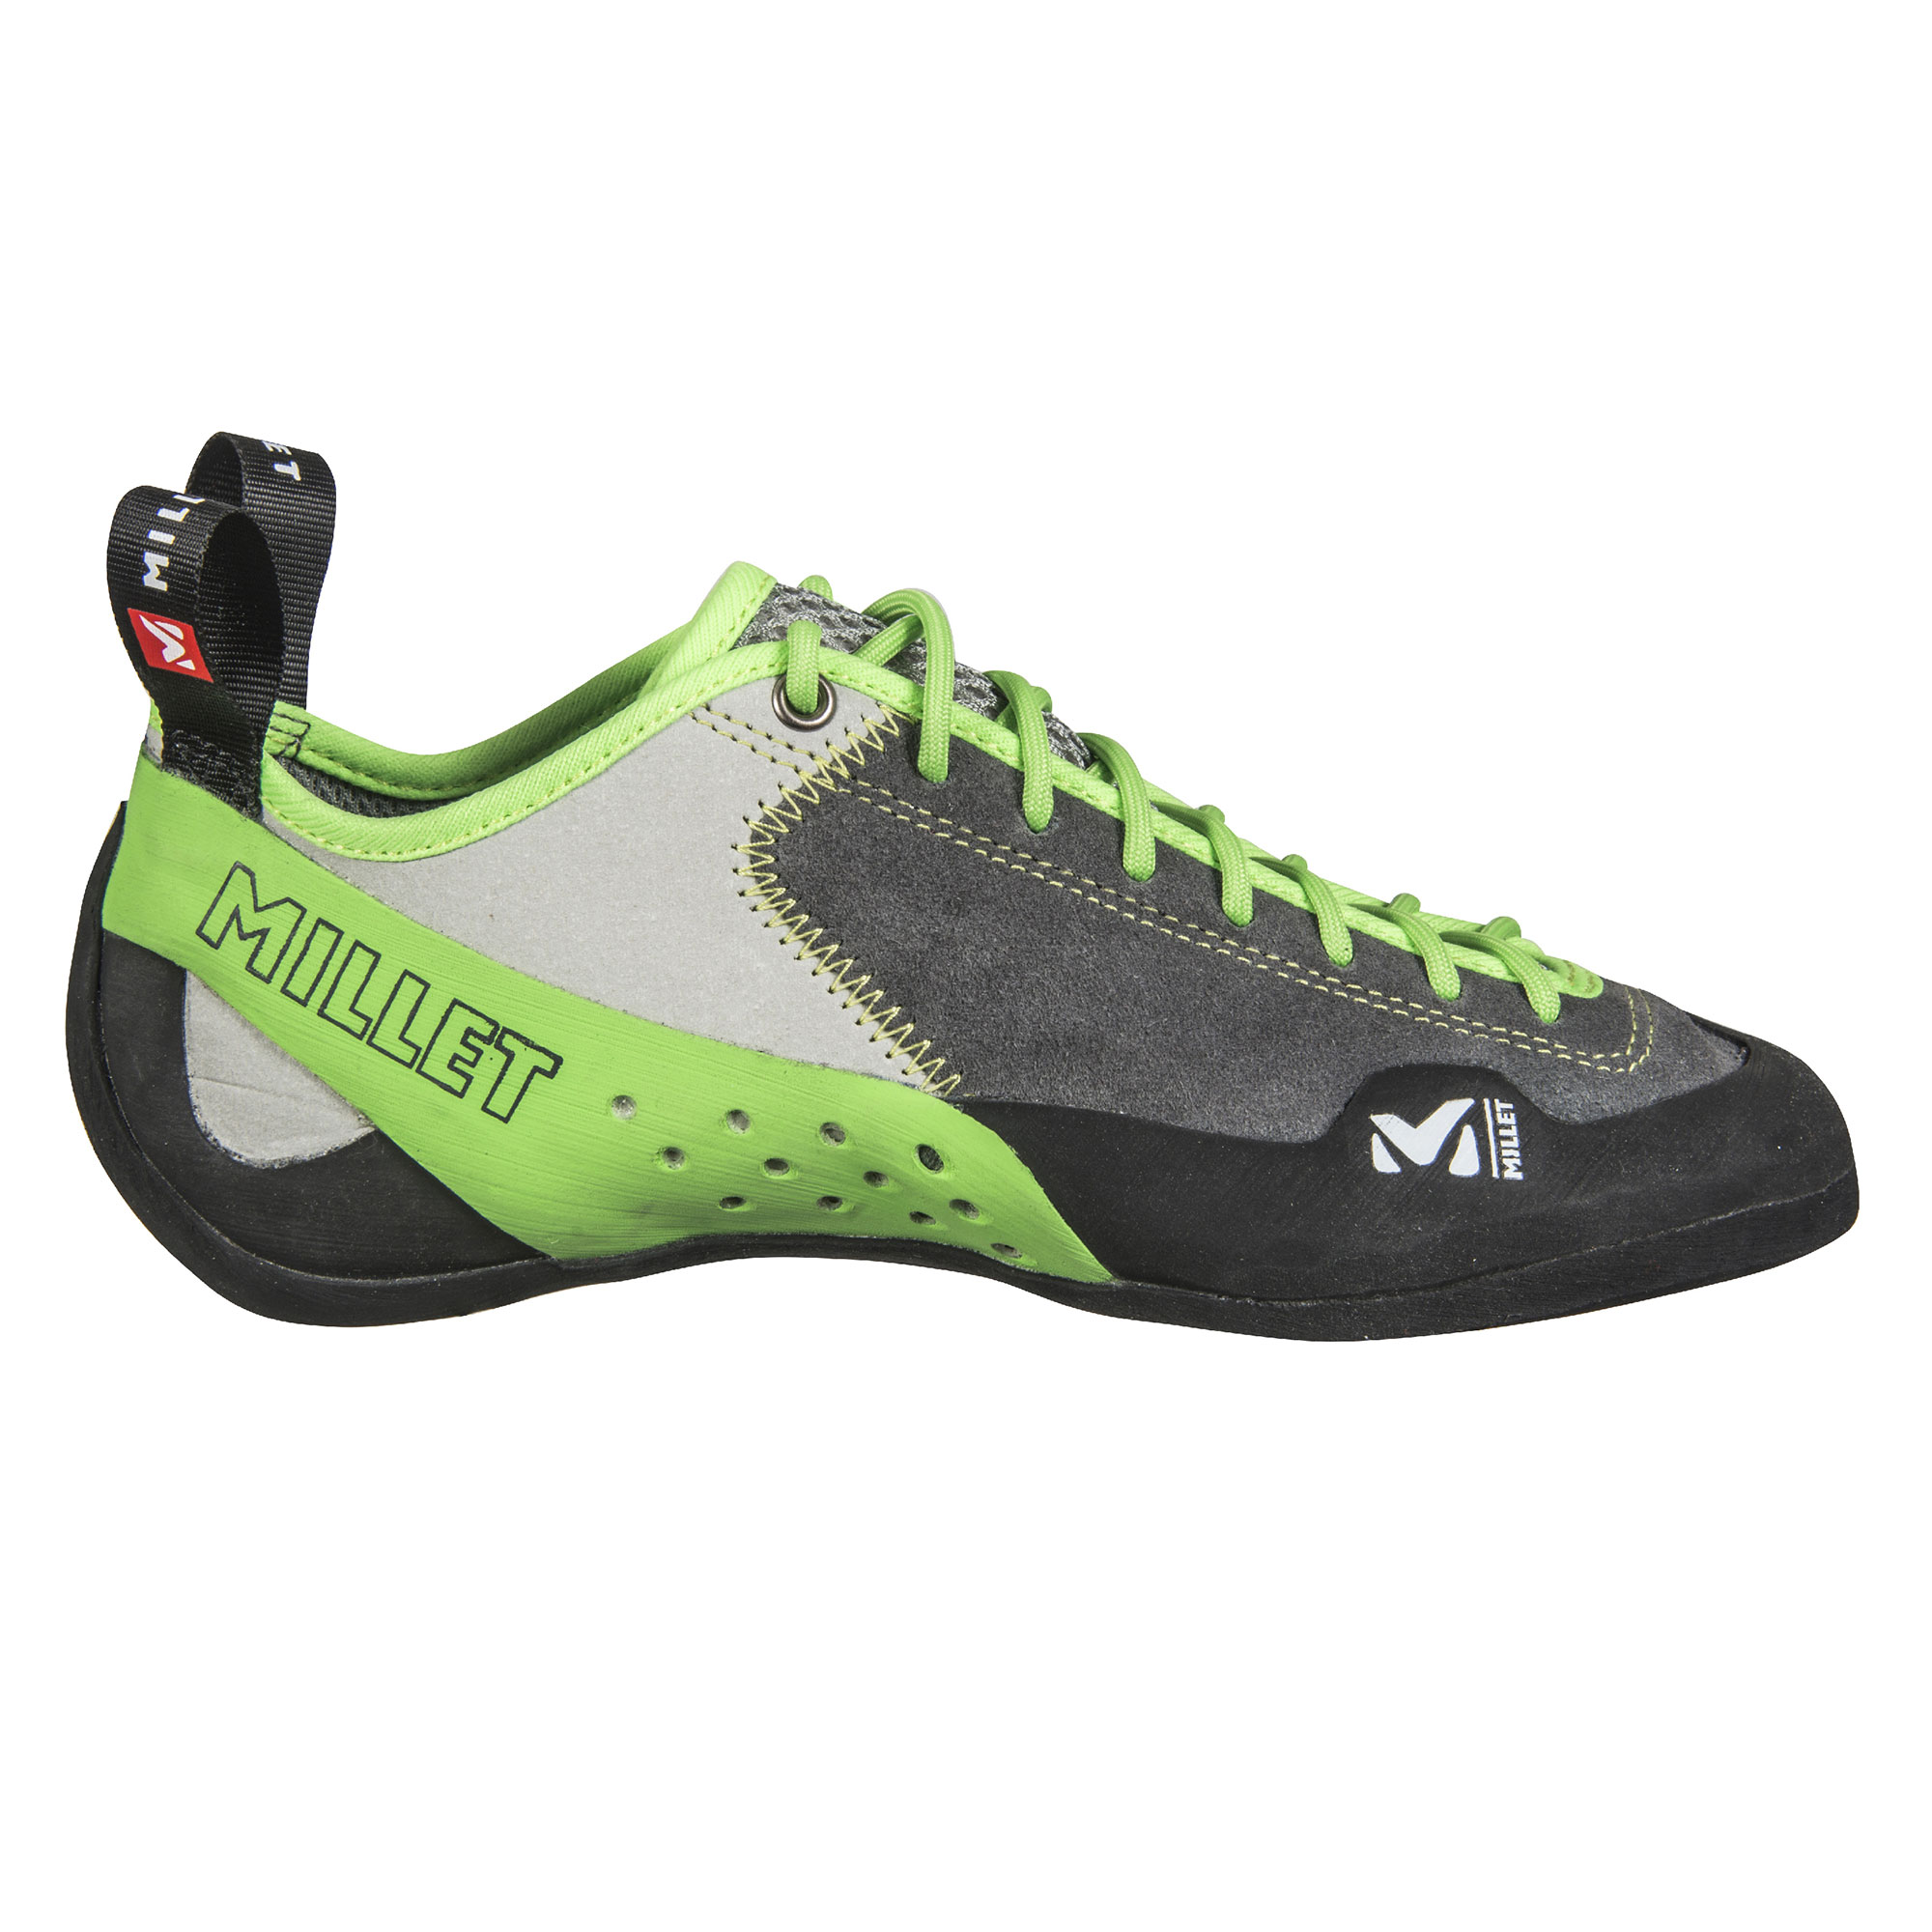 Millet - Rock Up - Climbing shoes